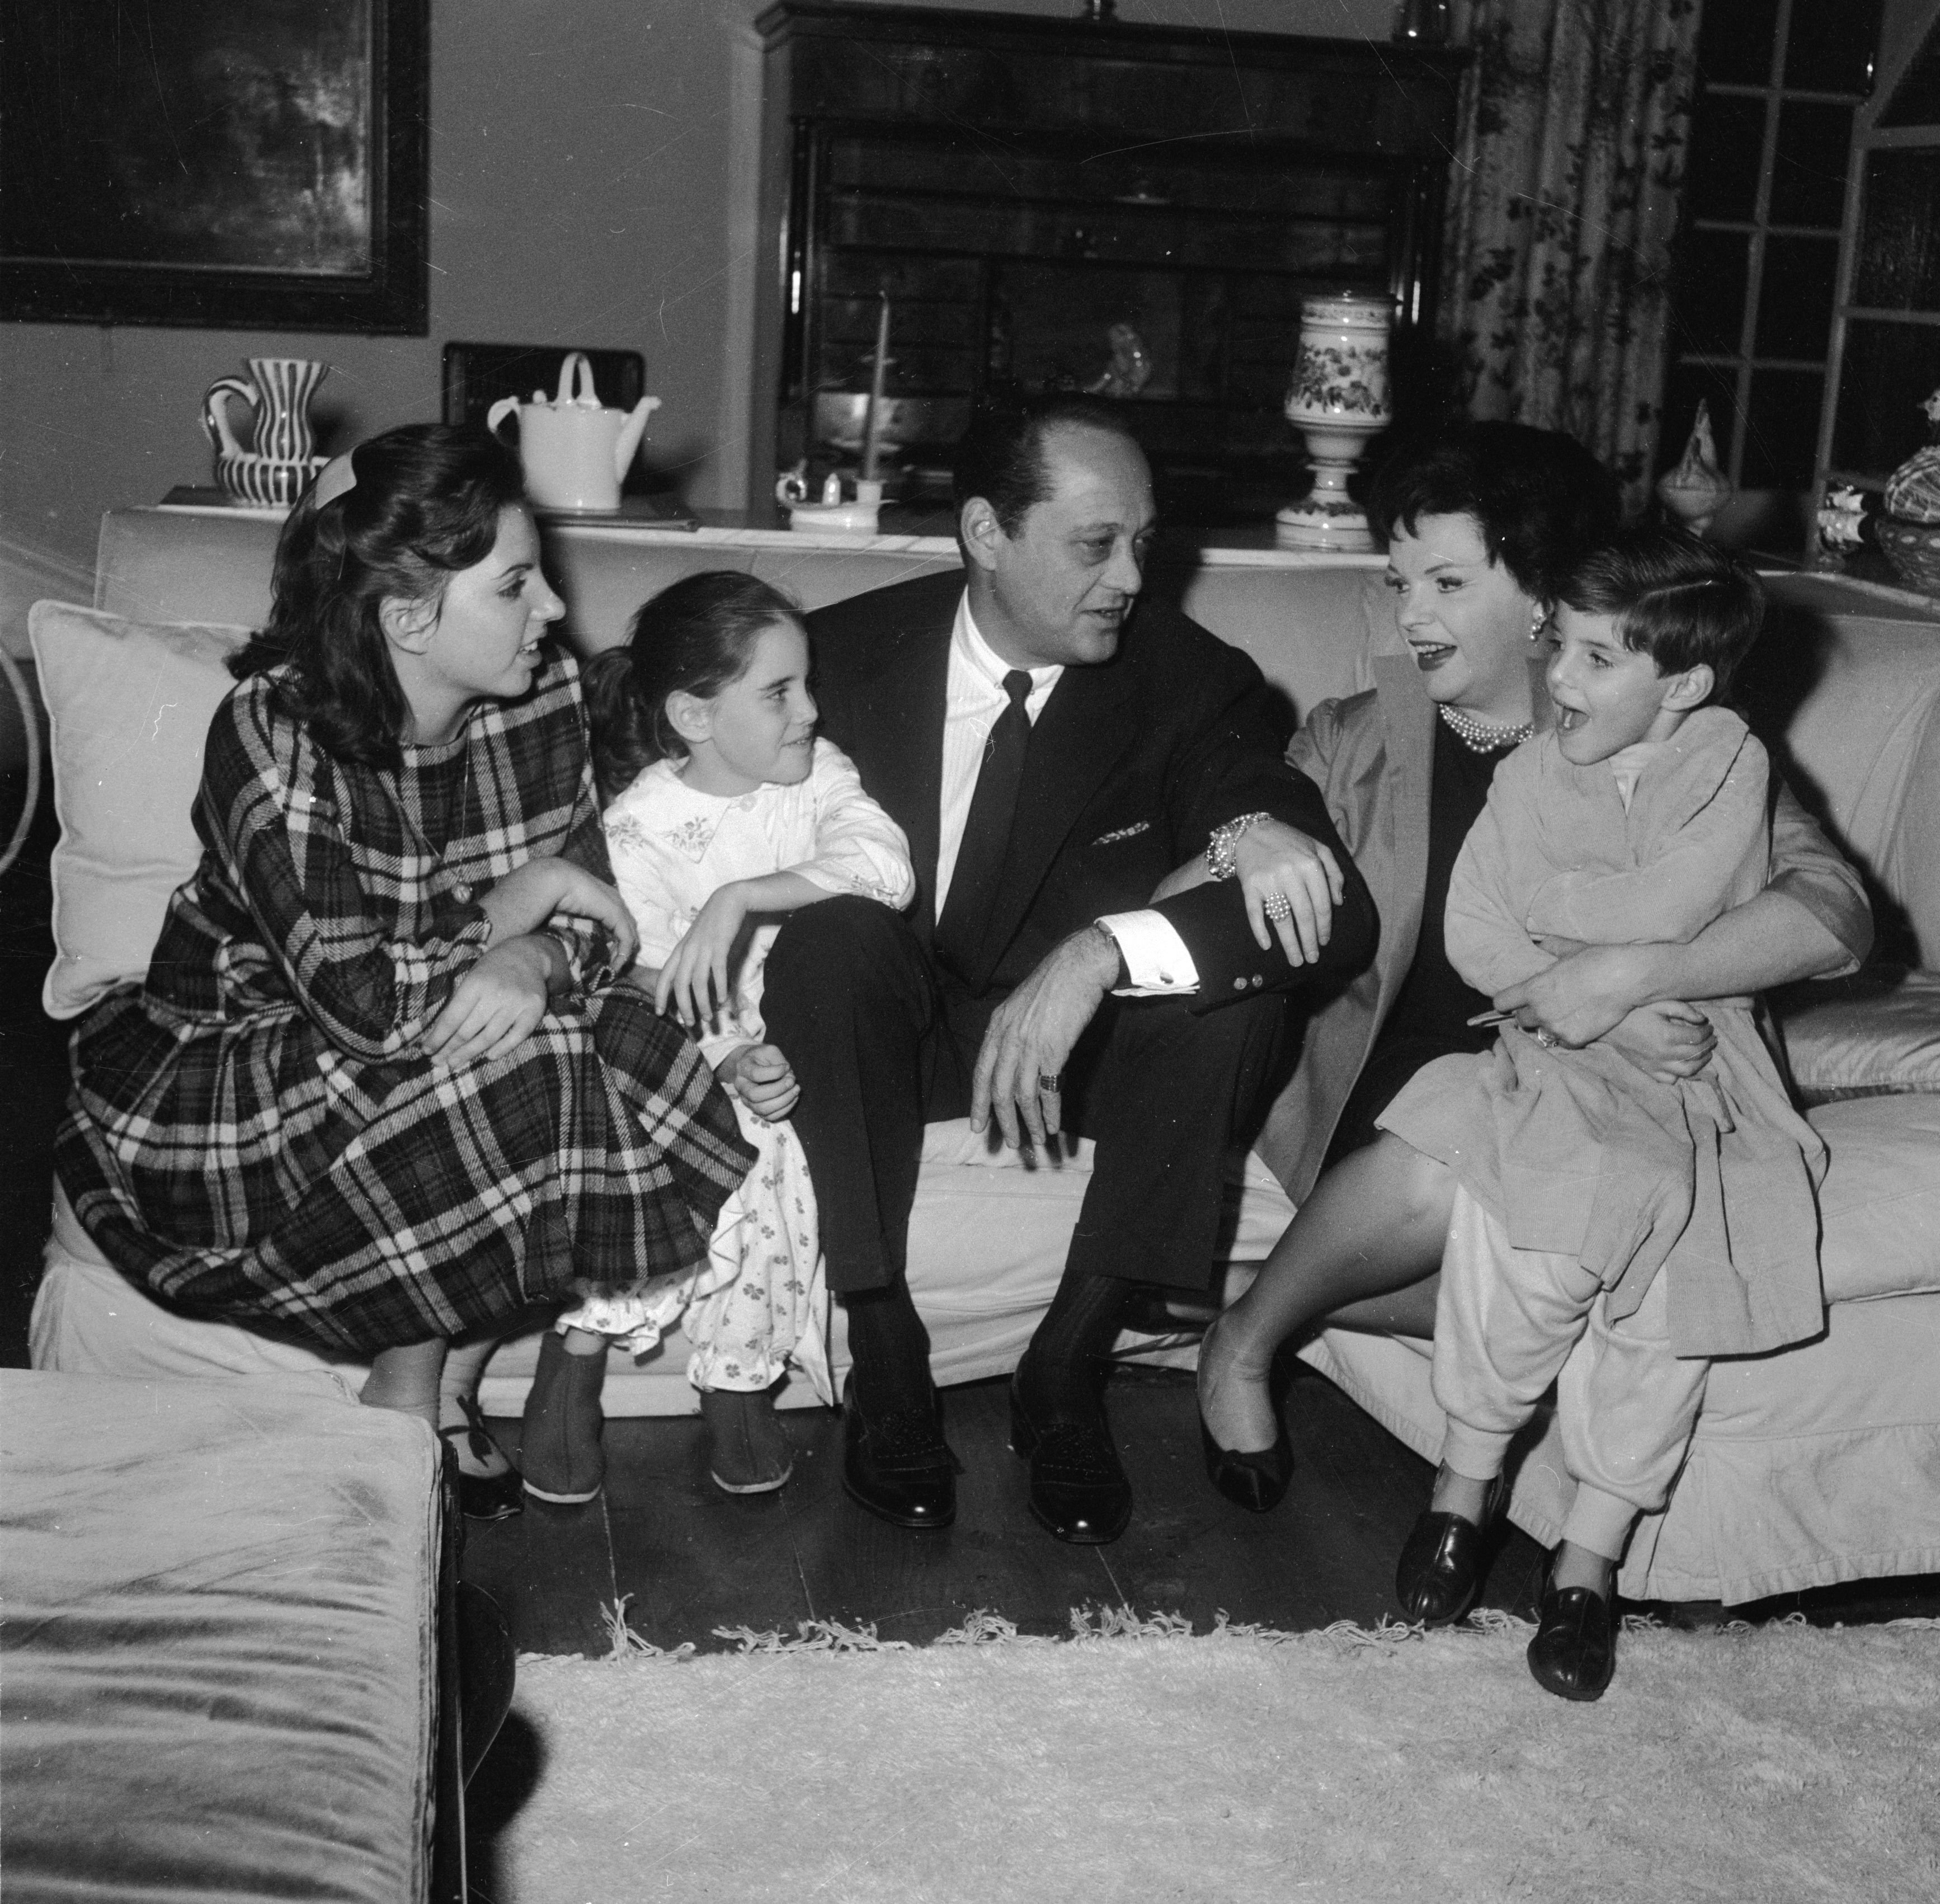 Judy Garland (1922 - 1969) with her husband, film producer, Sid Luft and their children, Liza, Lorna, and Joe, at their home. | Source: Getty Images